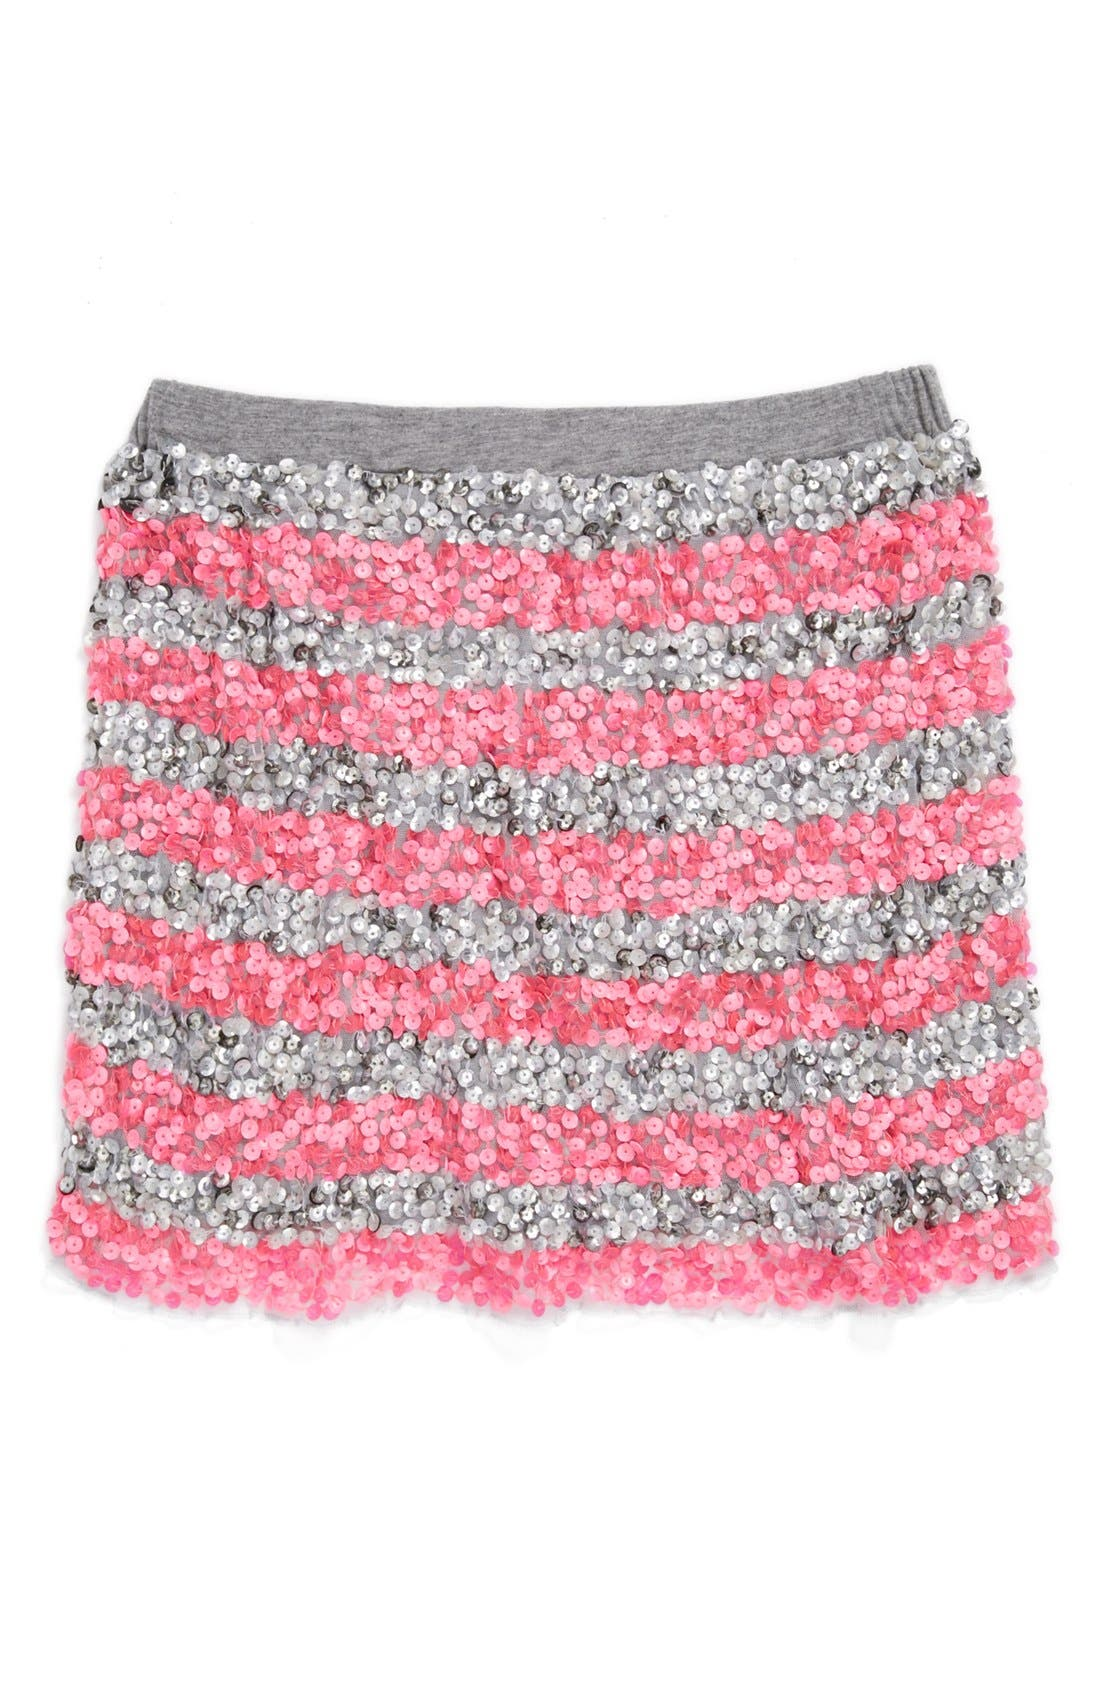 Main Image - Peek 'Zoe' Sequin Skirt (Toddler Girls, Little Girls & Big Girls)